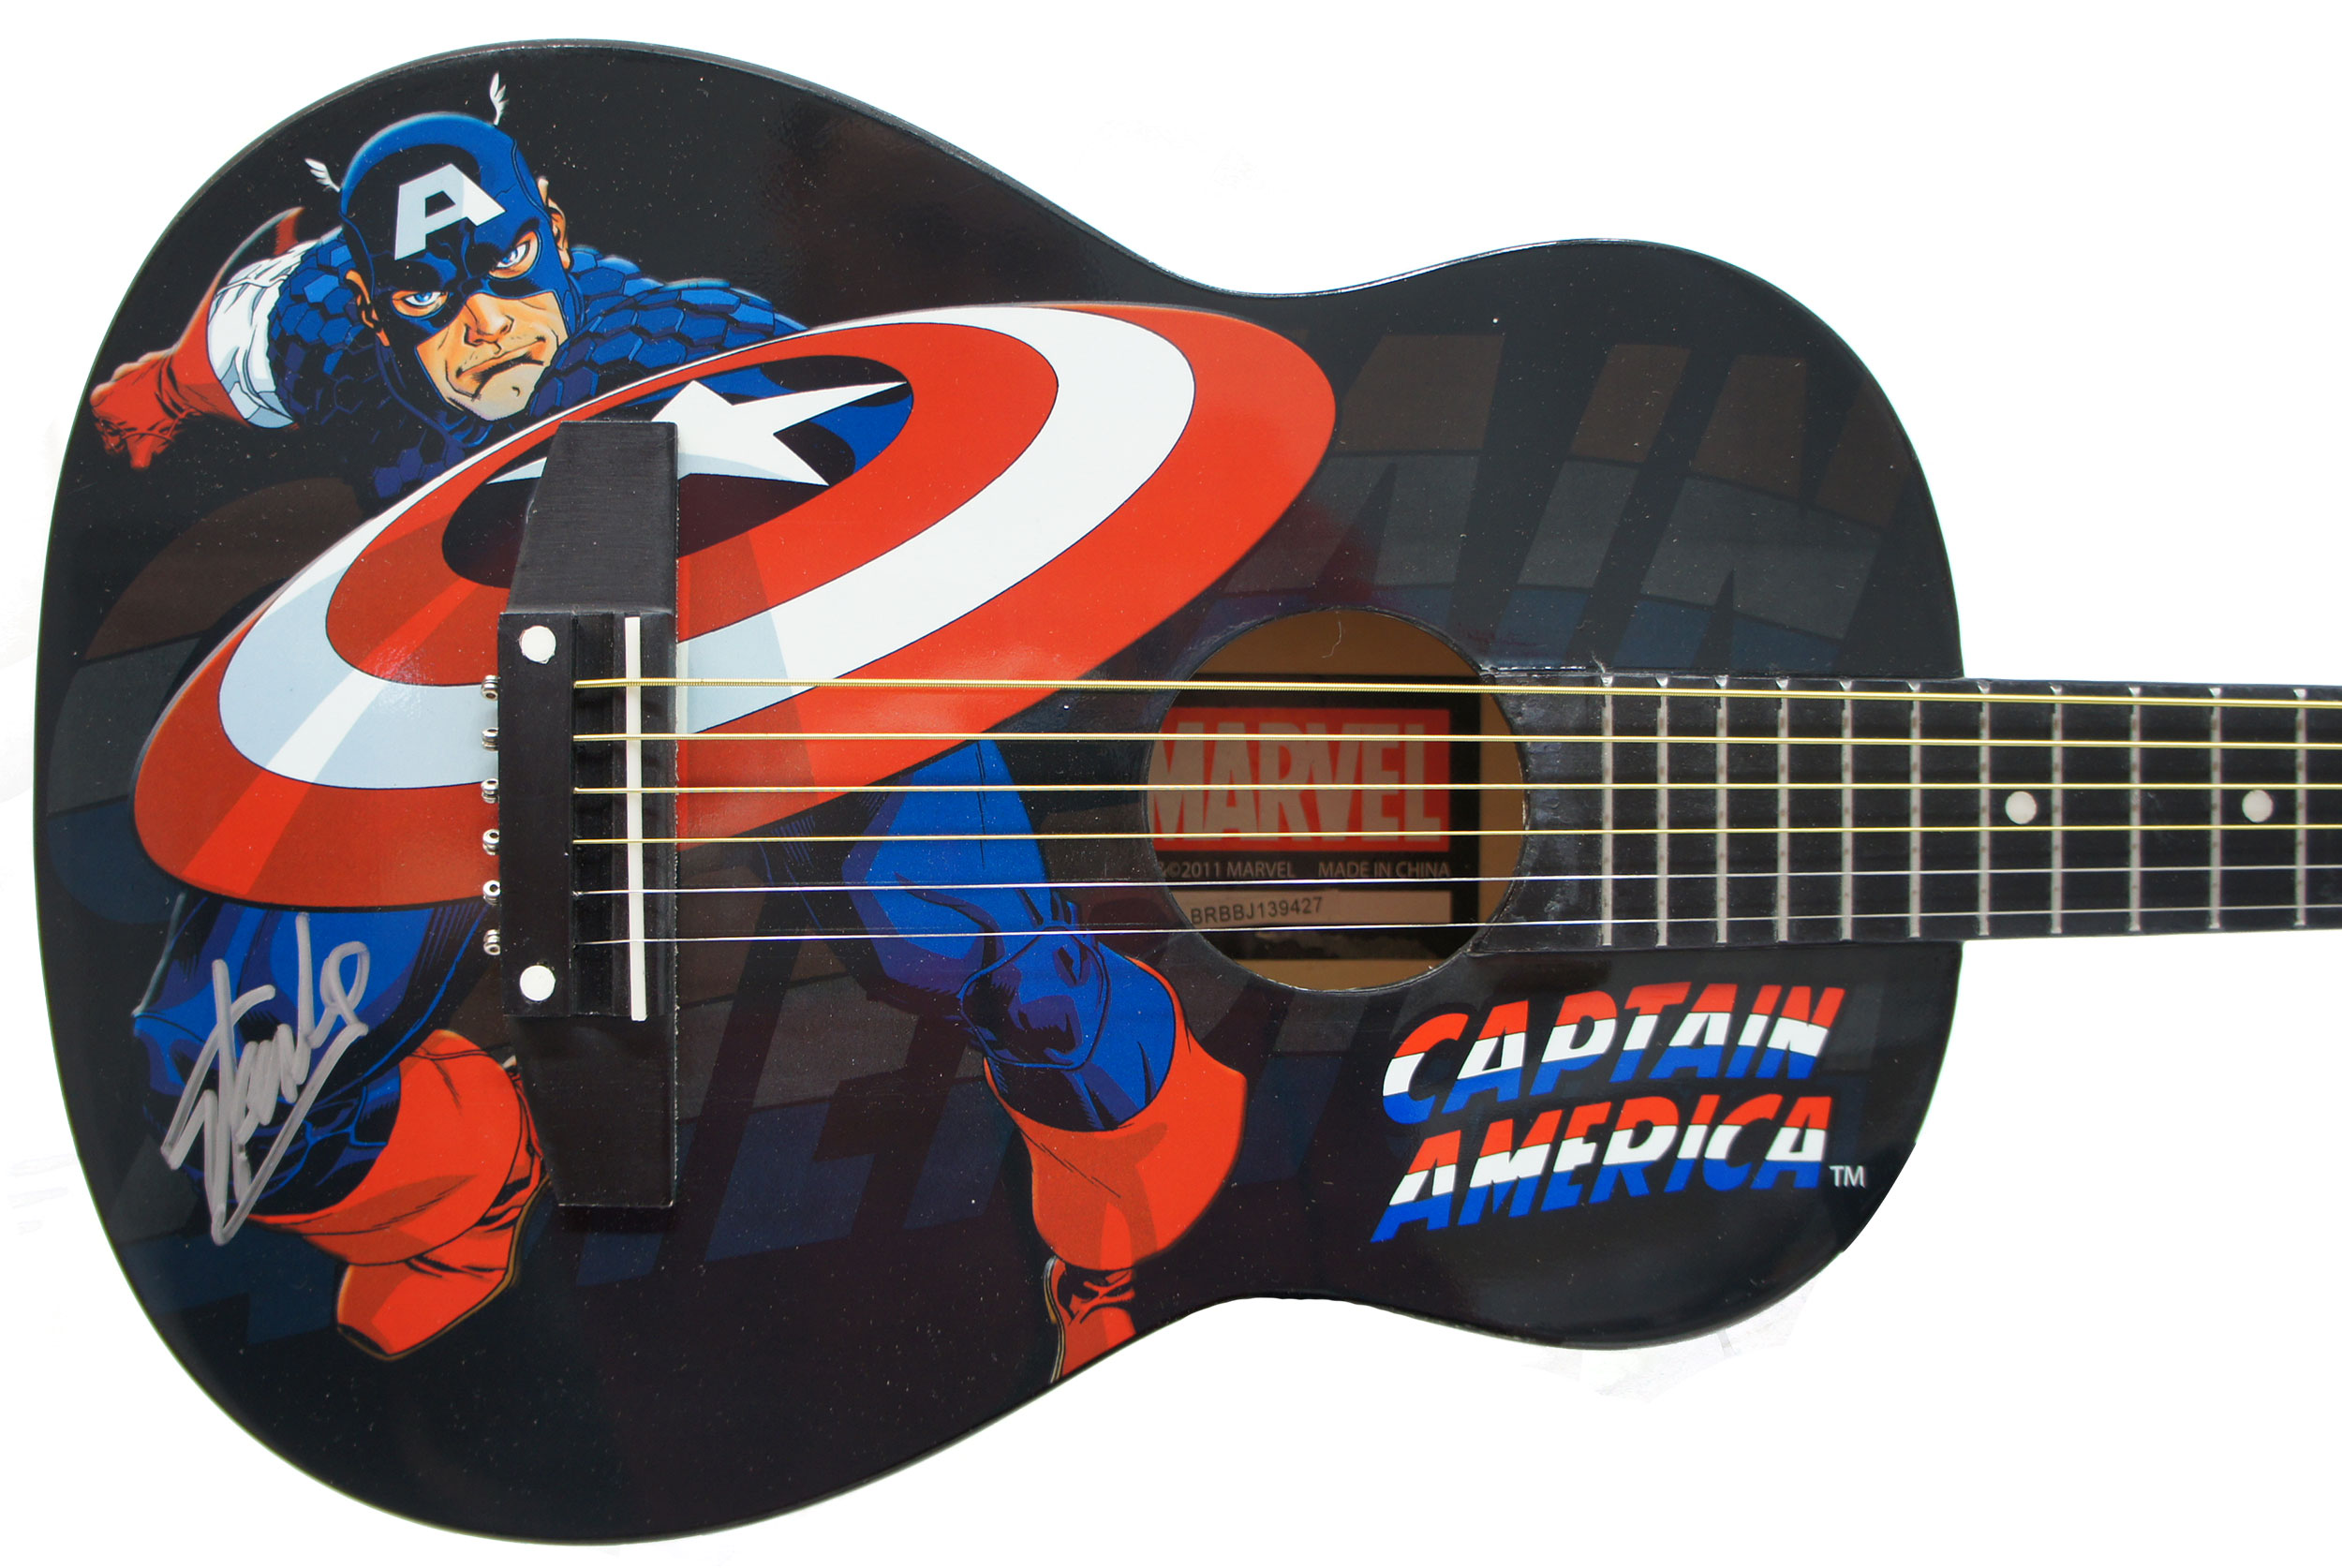 Peavey Marvel Avengers Captain America Graphic 1/2 Size Acoustic Guitar Signed by Stan Lee with Certificate of Authenticity (Serial  BRBBJ139427)